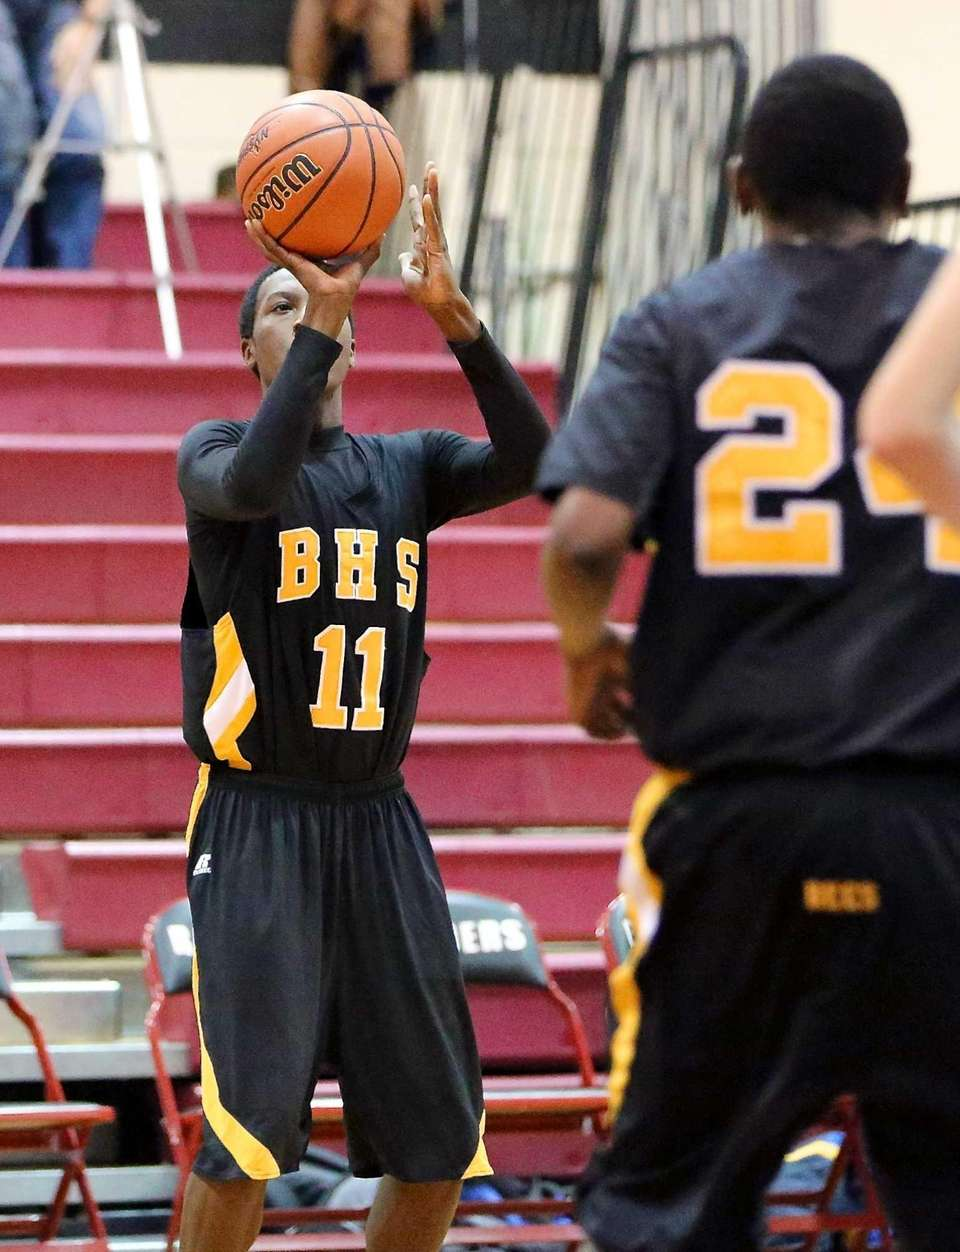 Bridgehampton's Jerome Walker drains a three pointer against